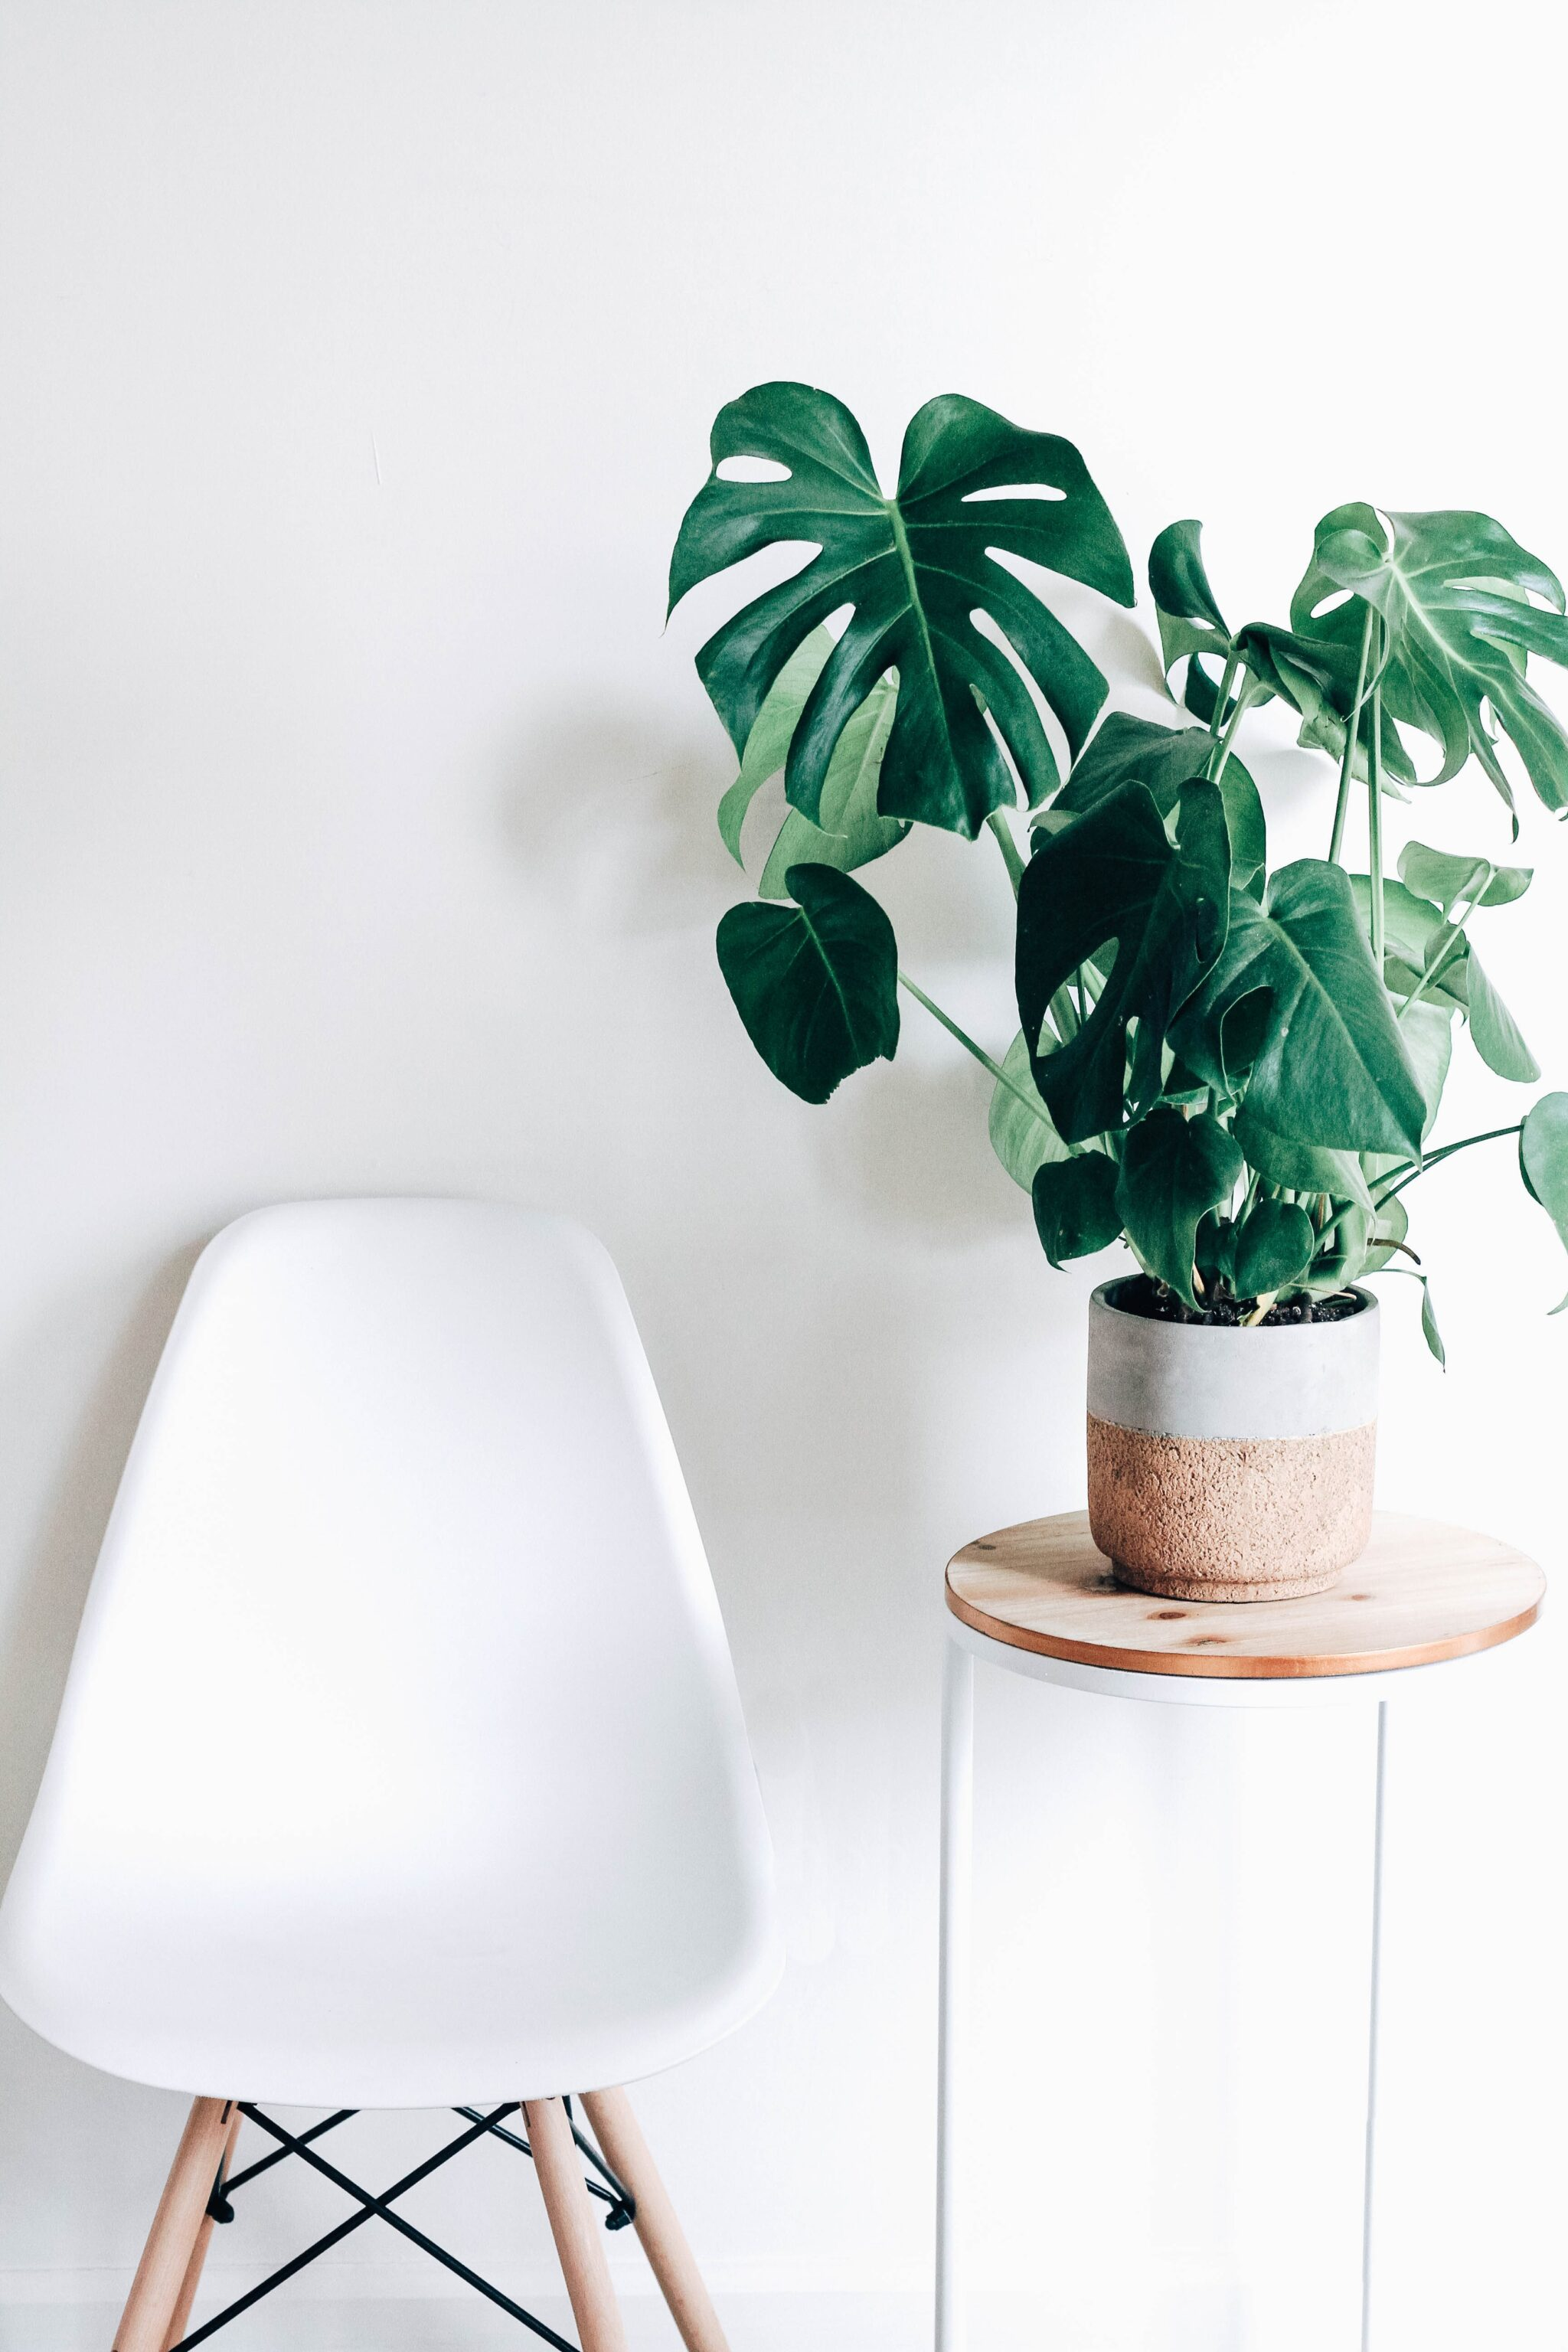 plant on table by chair